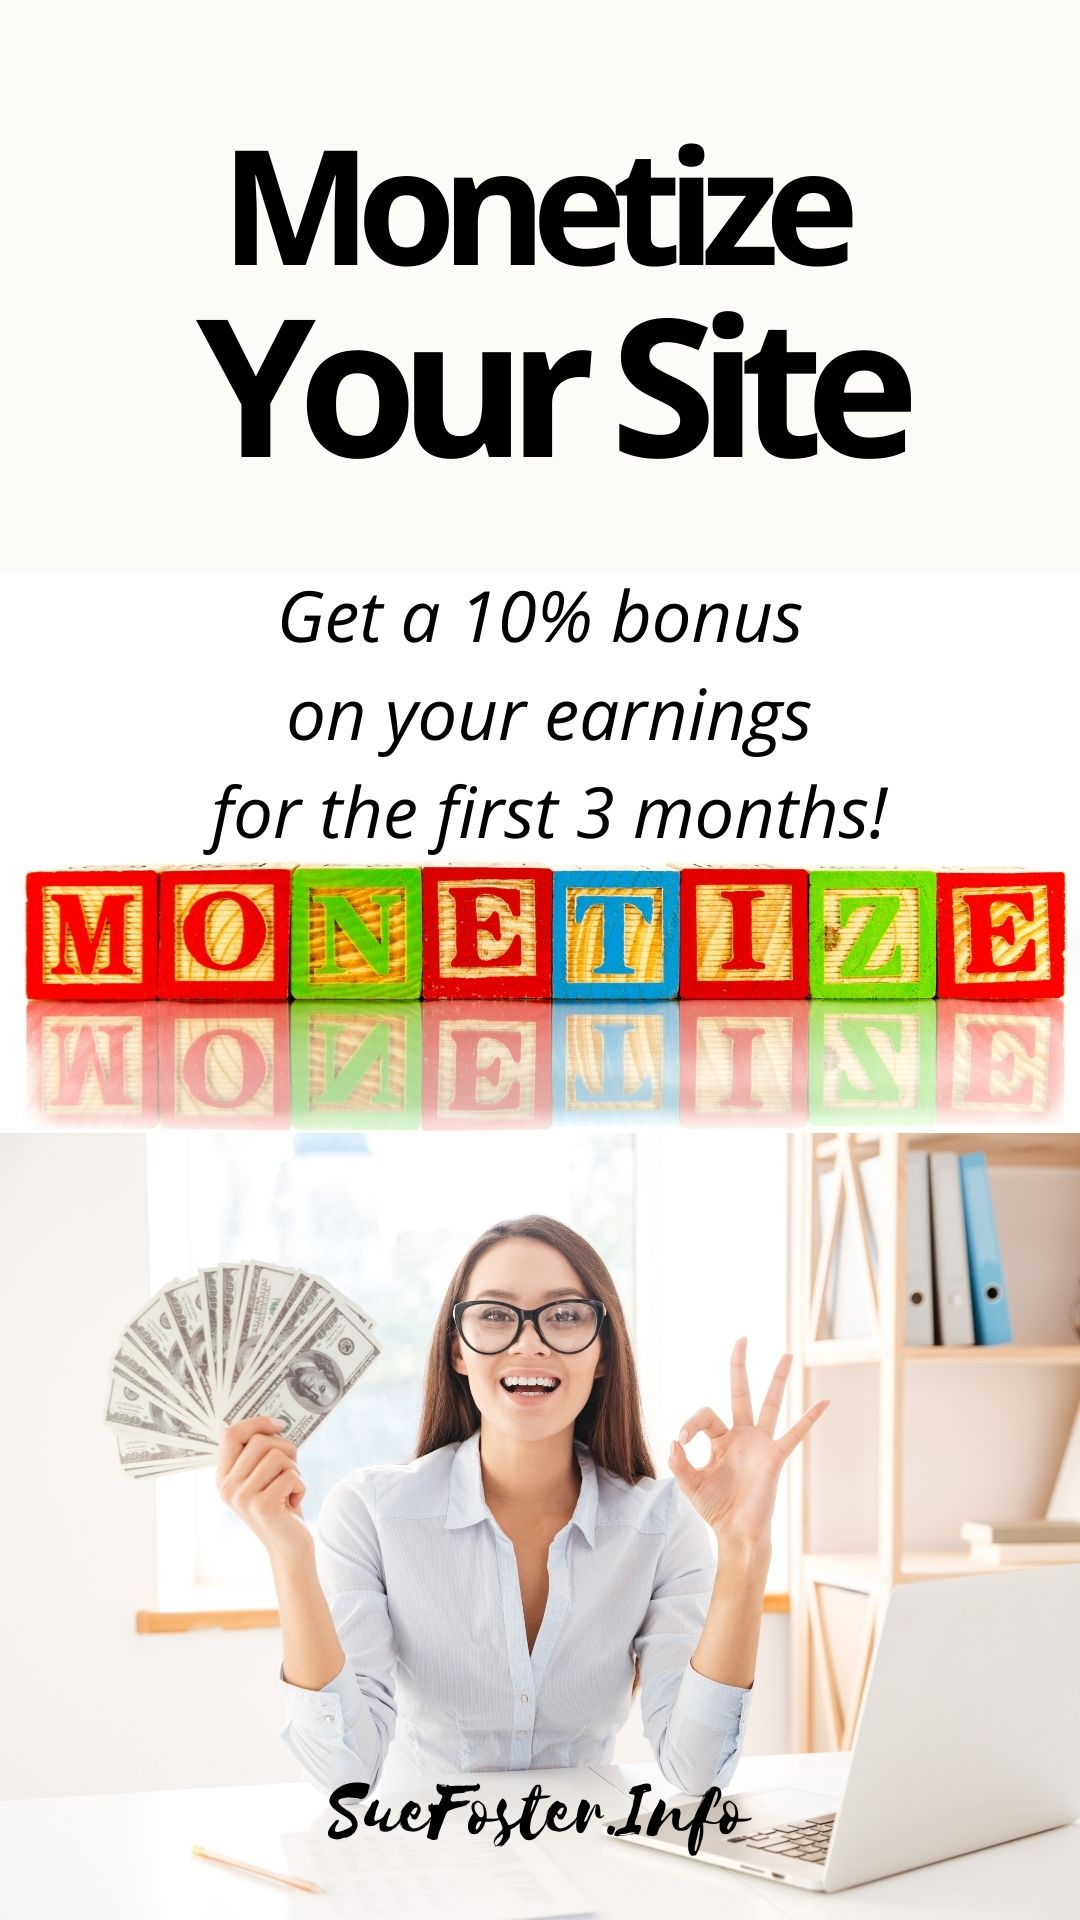 Monetize your site and get a 10% bonus on your earnings for the first 3 months!